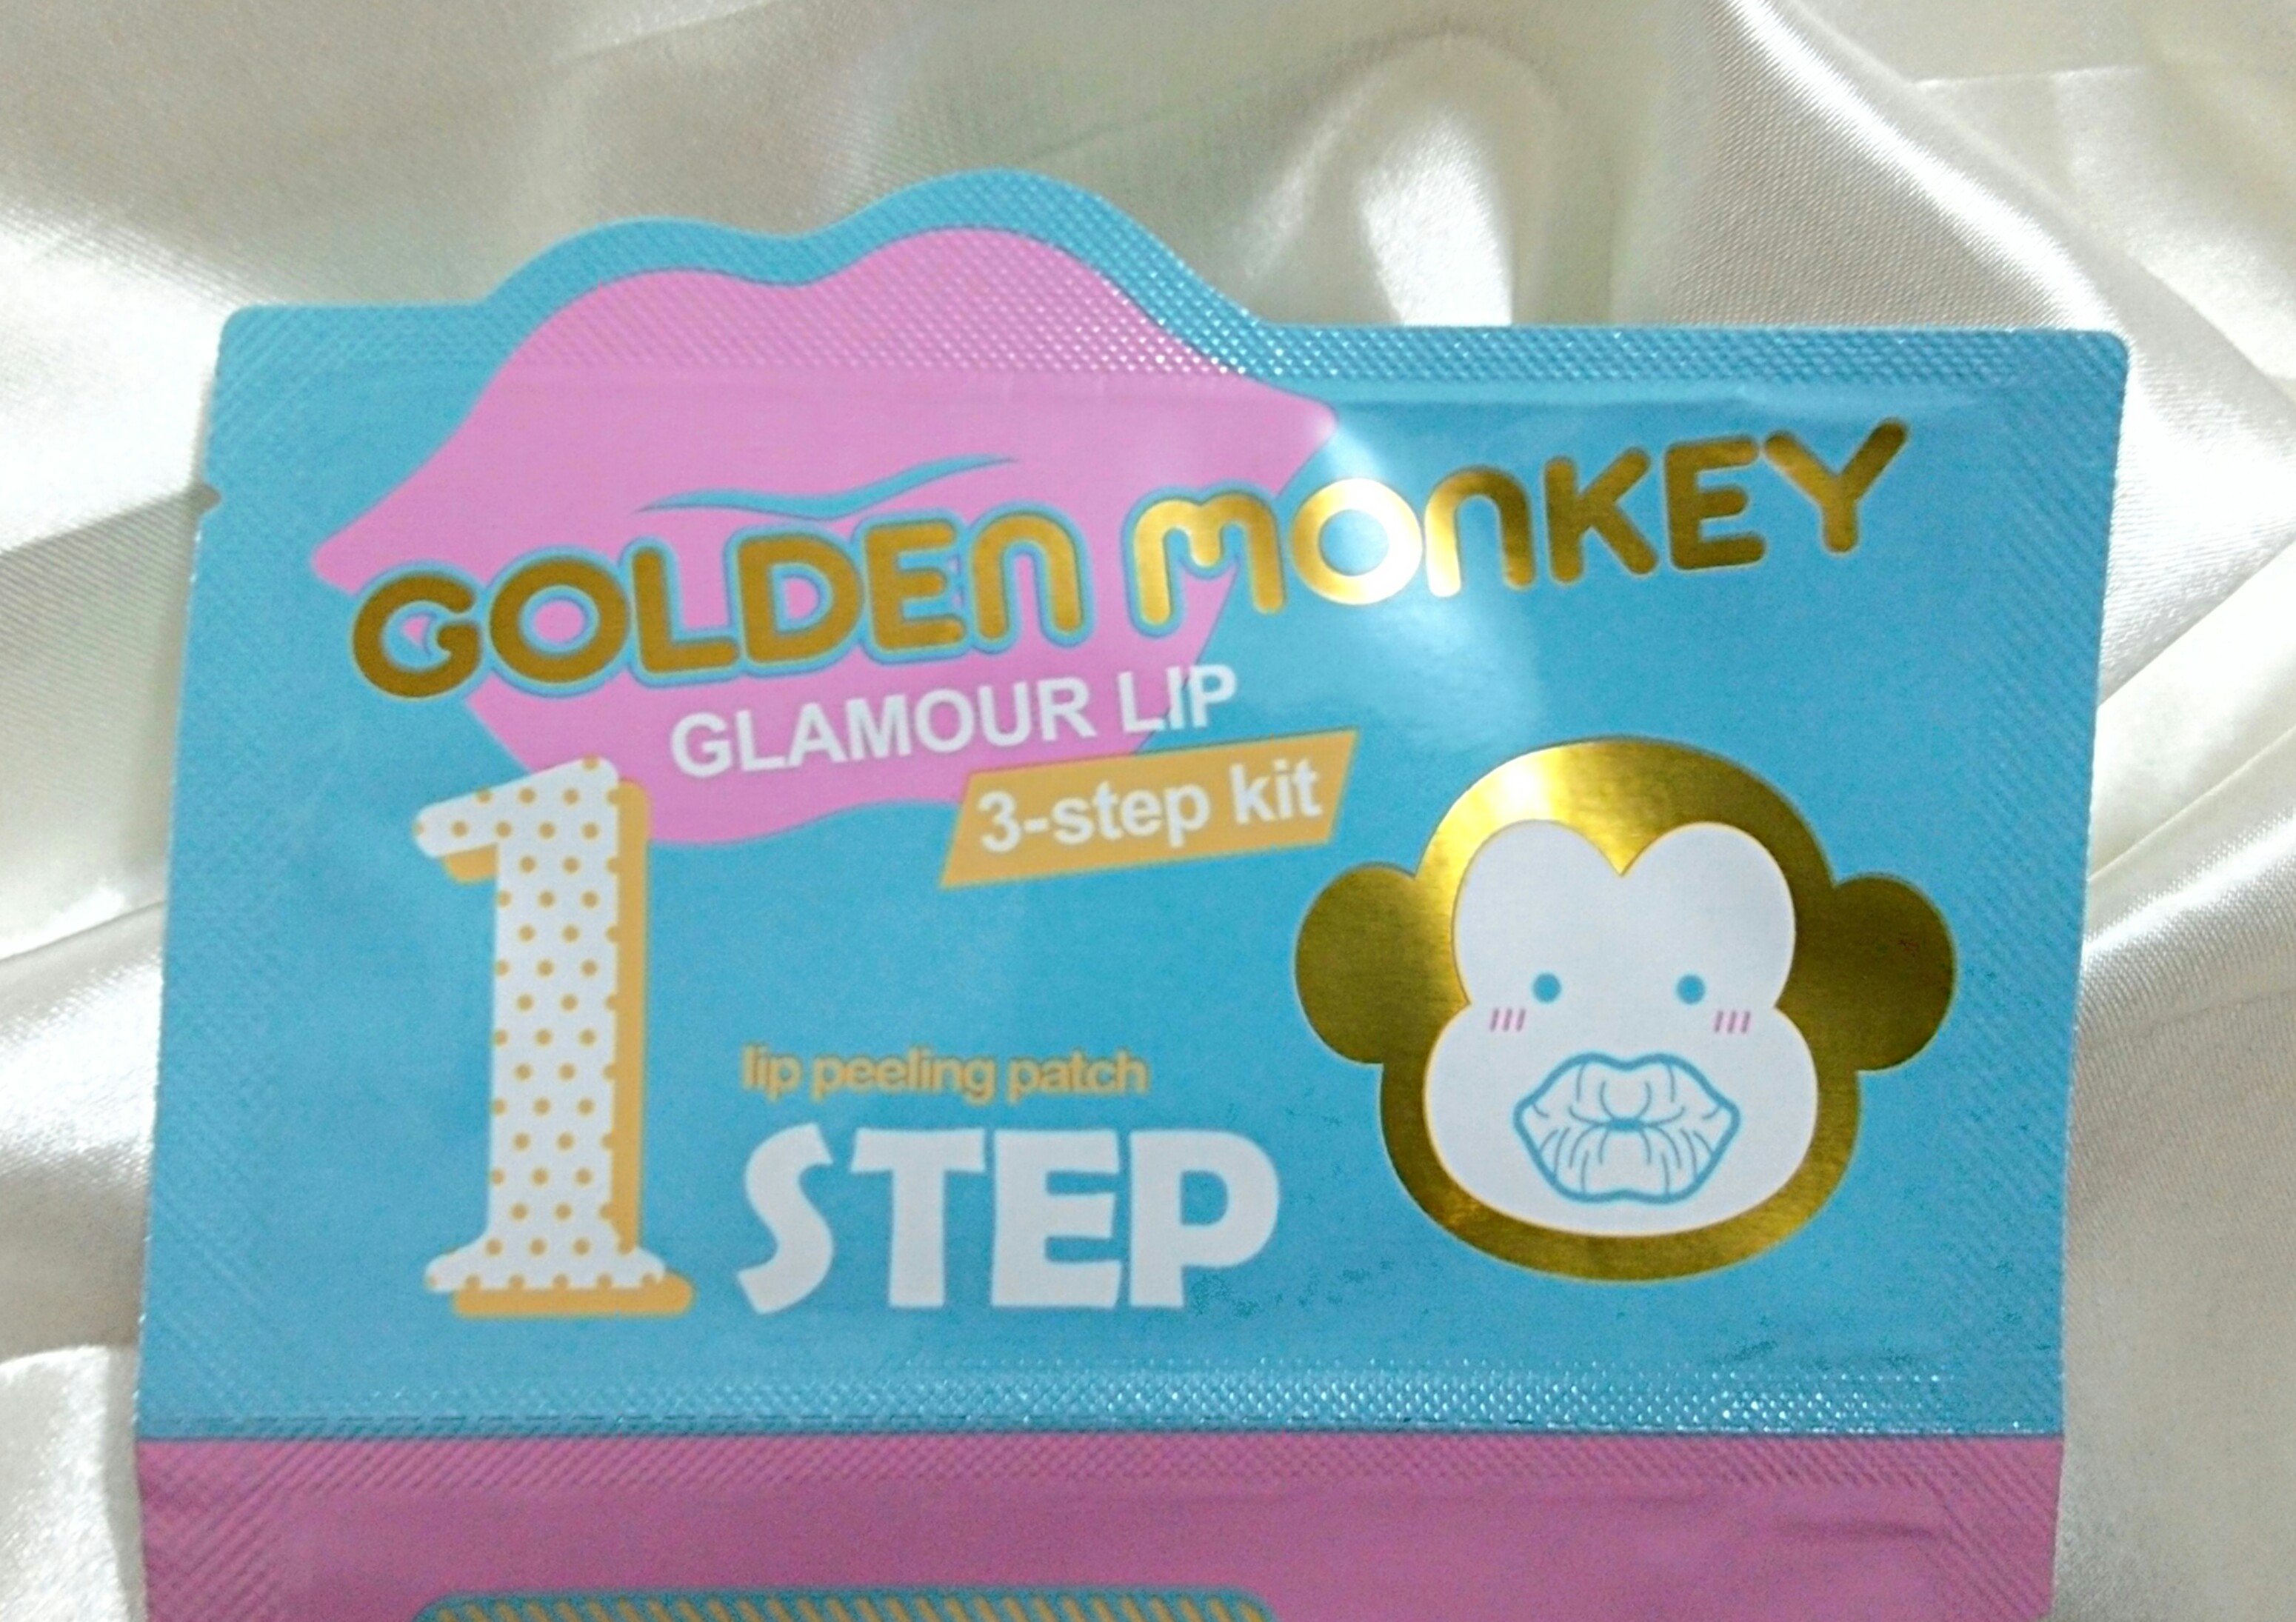 Holika Holika Golden Monkey Glamour Lip 3-Step Kit Review